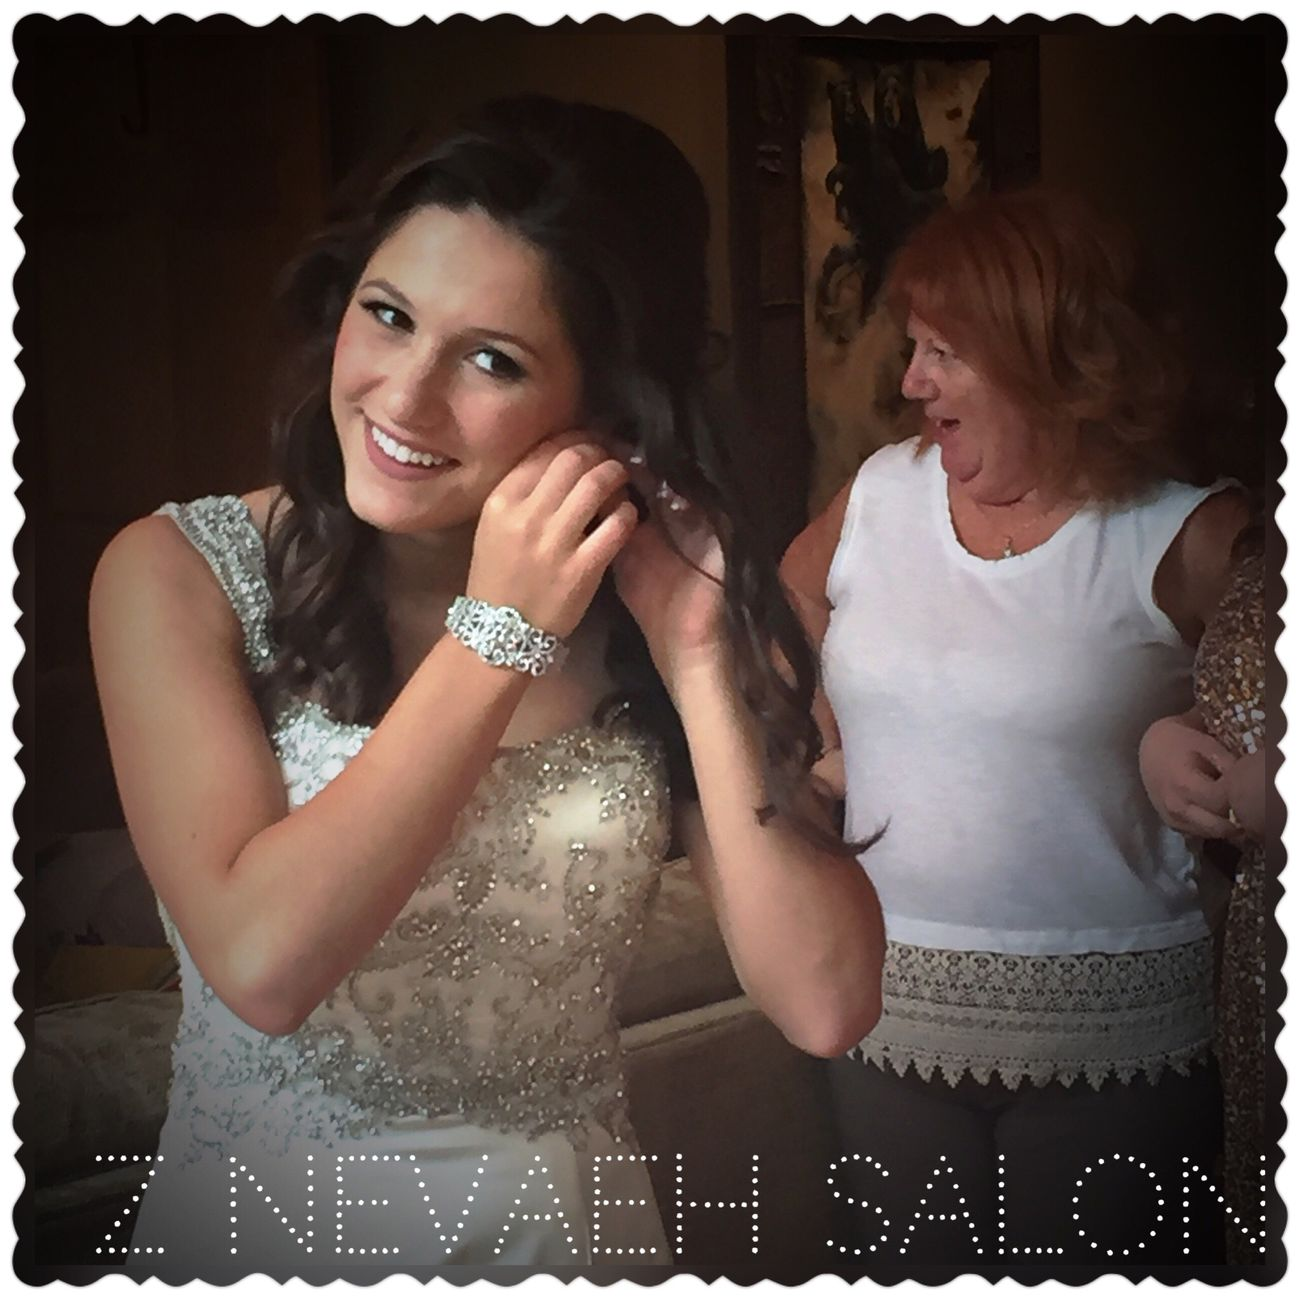 Wedding Hair & Makeup Specialist @znevaehsalon @lorealorous Check This Out Taking Photos Vintage Fashion Hair Hairstyle Fashion Hair Eye4photography # Photooftheday Salon Fashion #style #stylish #love #TagsForLikes #me #cute #photooftheday #nails #hair #beauty #beautiful #instagood #instafashion # Z Nevaeh Salon Teamznevaeh @znevaehsalon Hairtrends Tecni.art Knoxvillesalon Lorealprous L'Oreal Professionnel Weddding Weddinghair Wedding Make Weddingmoment